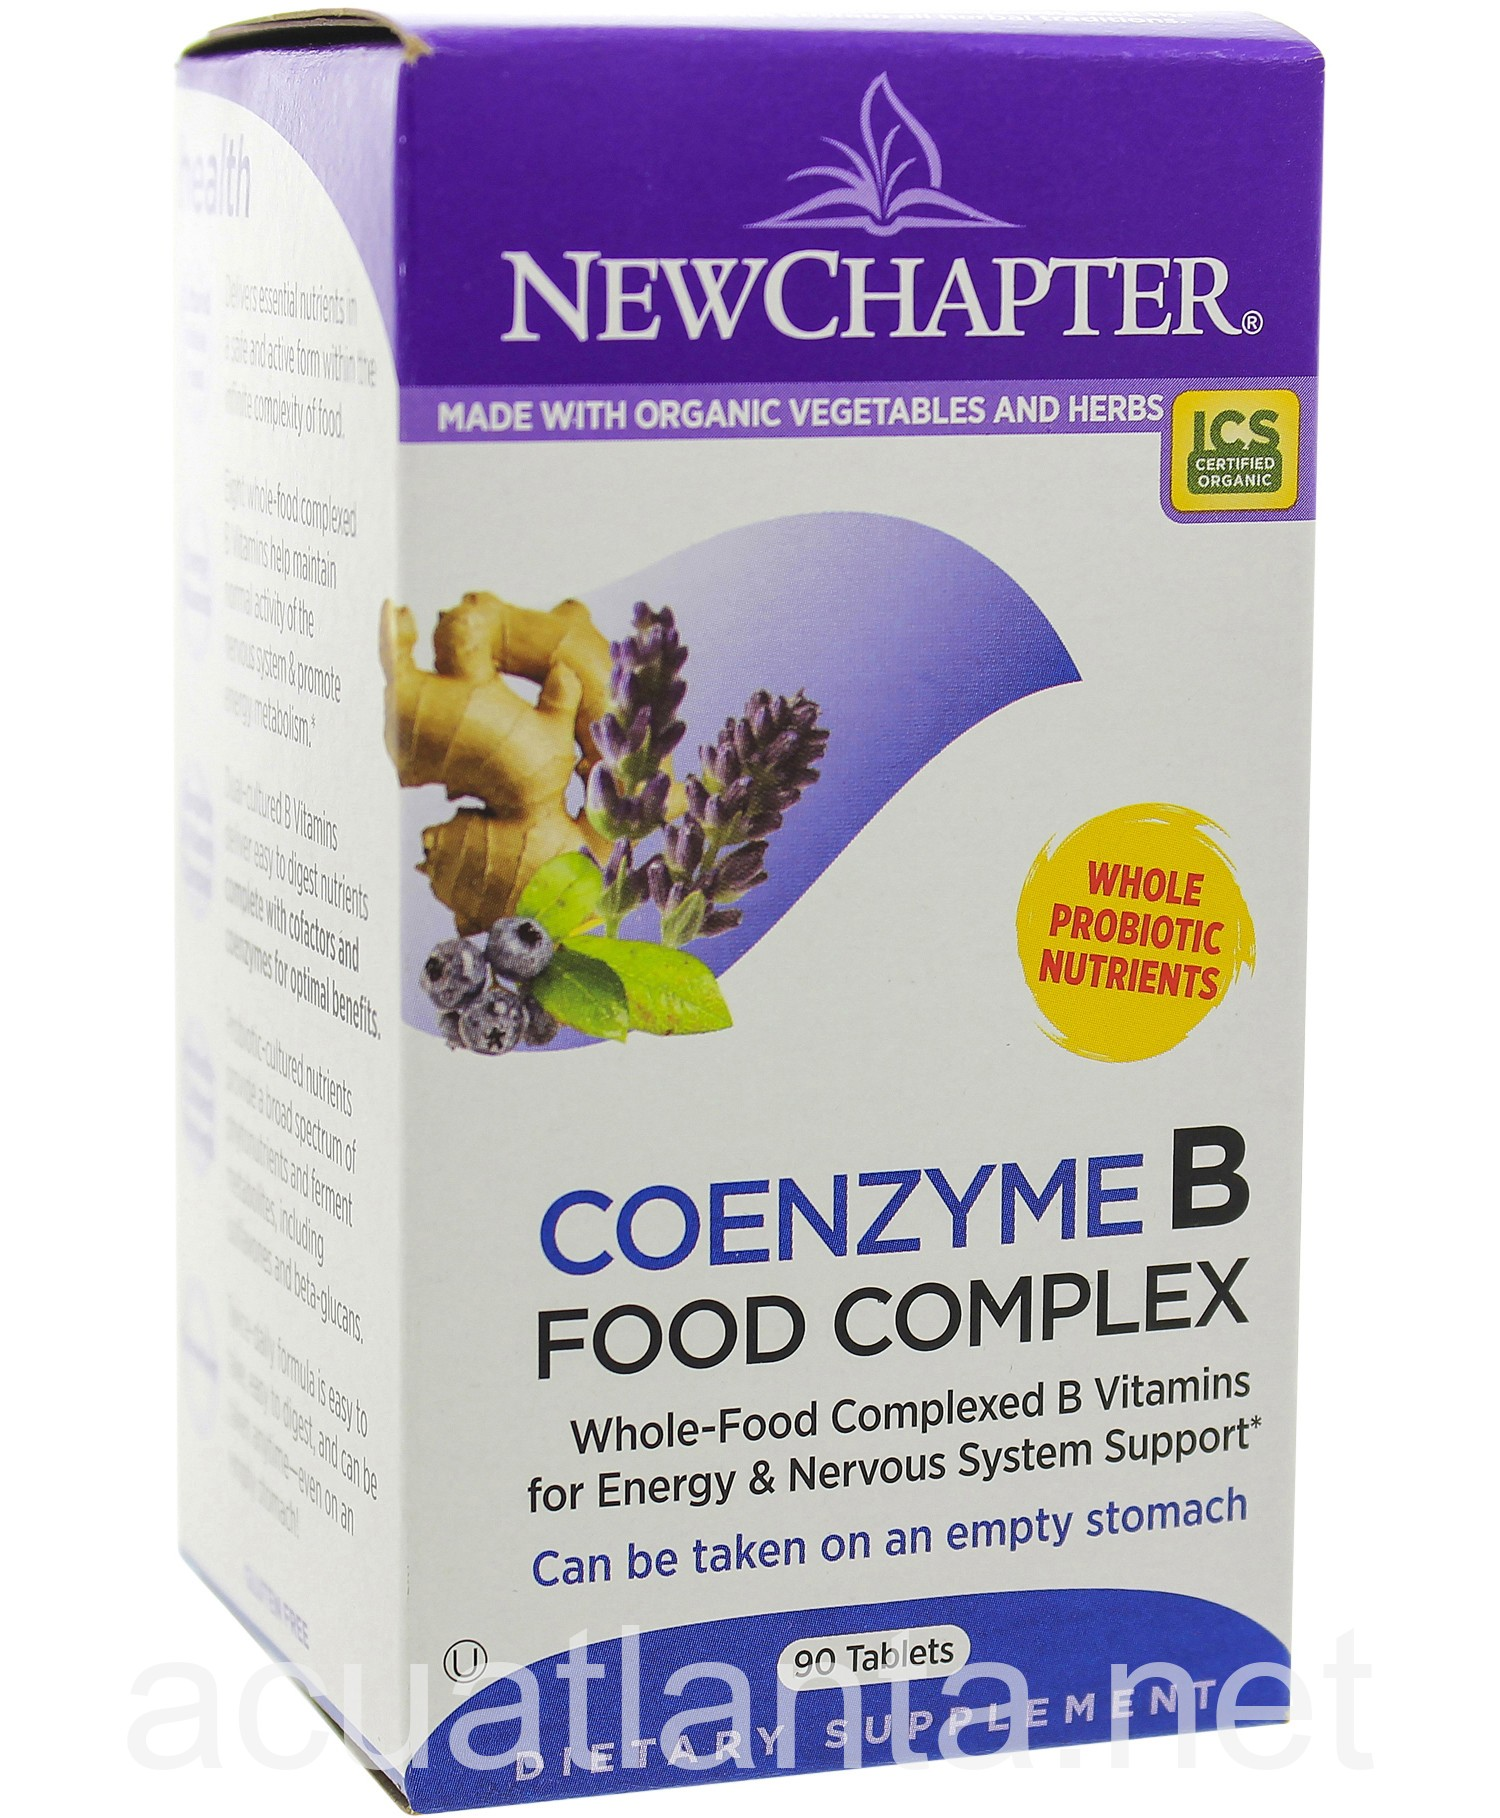 New Chapter Coenzyme B Food Complex Vitamin